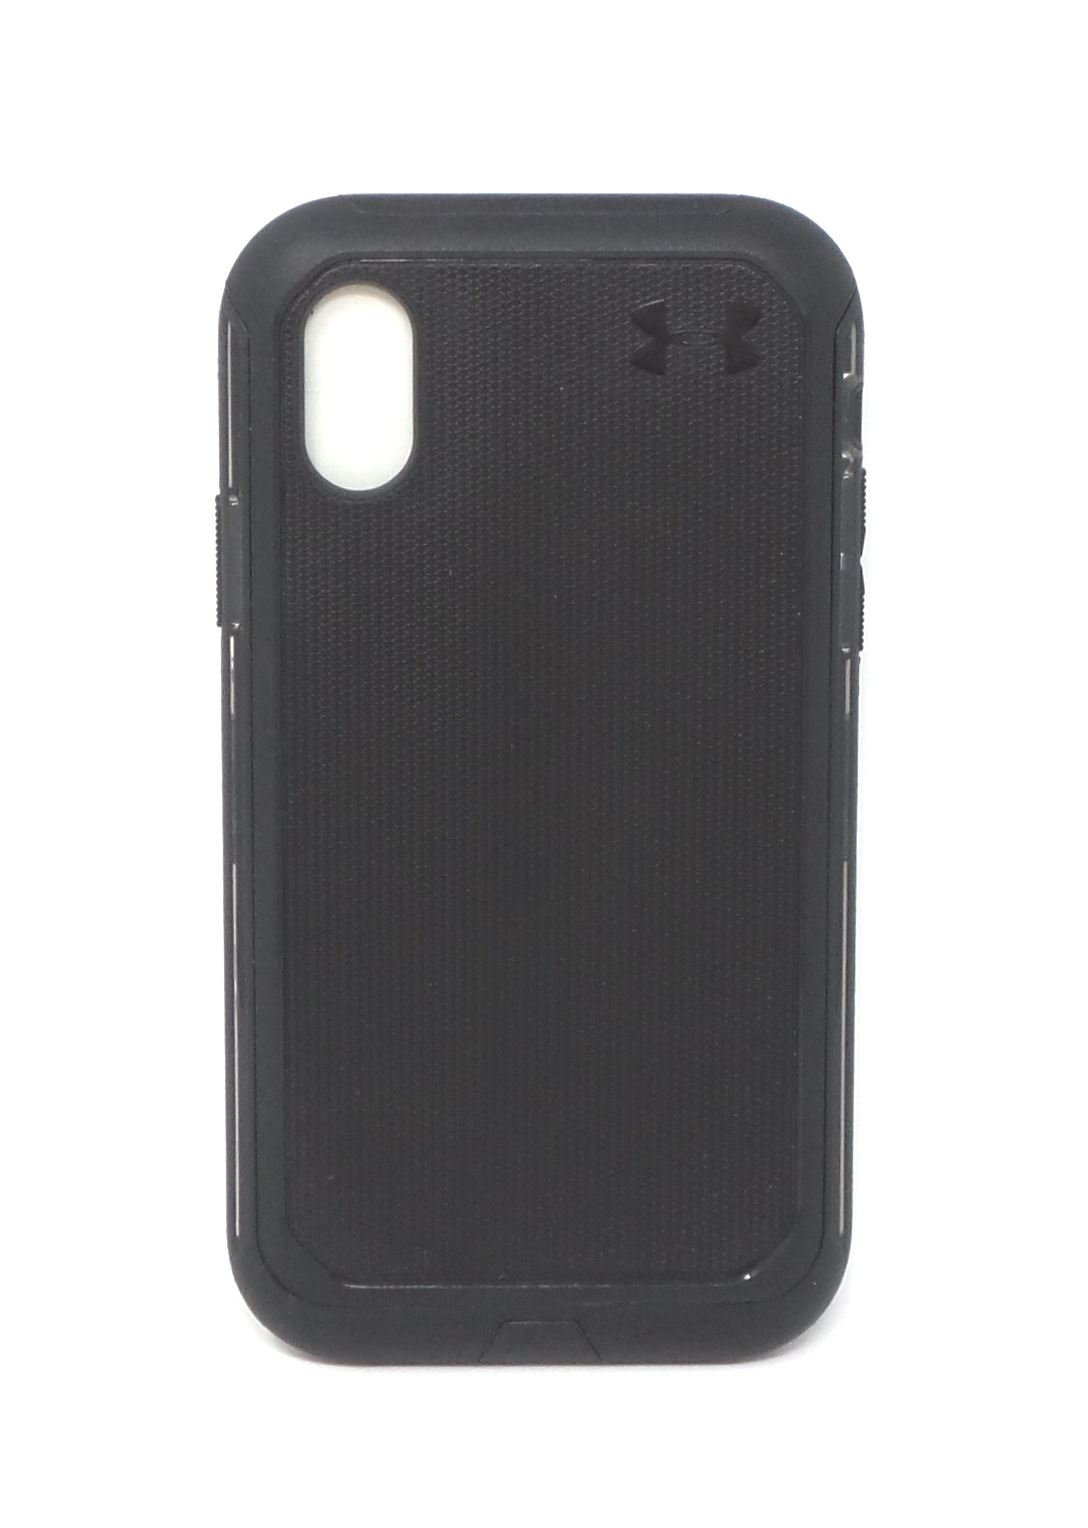 another chance 2d0c5 8d881 Details about Under Armour UA Protect Ultimate Case for Apple iPhone X  Black UAIPH-013-BLK